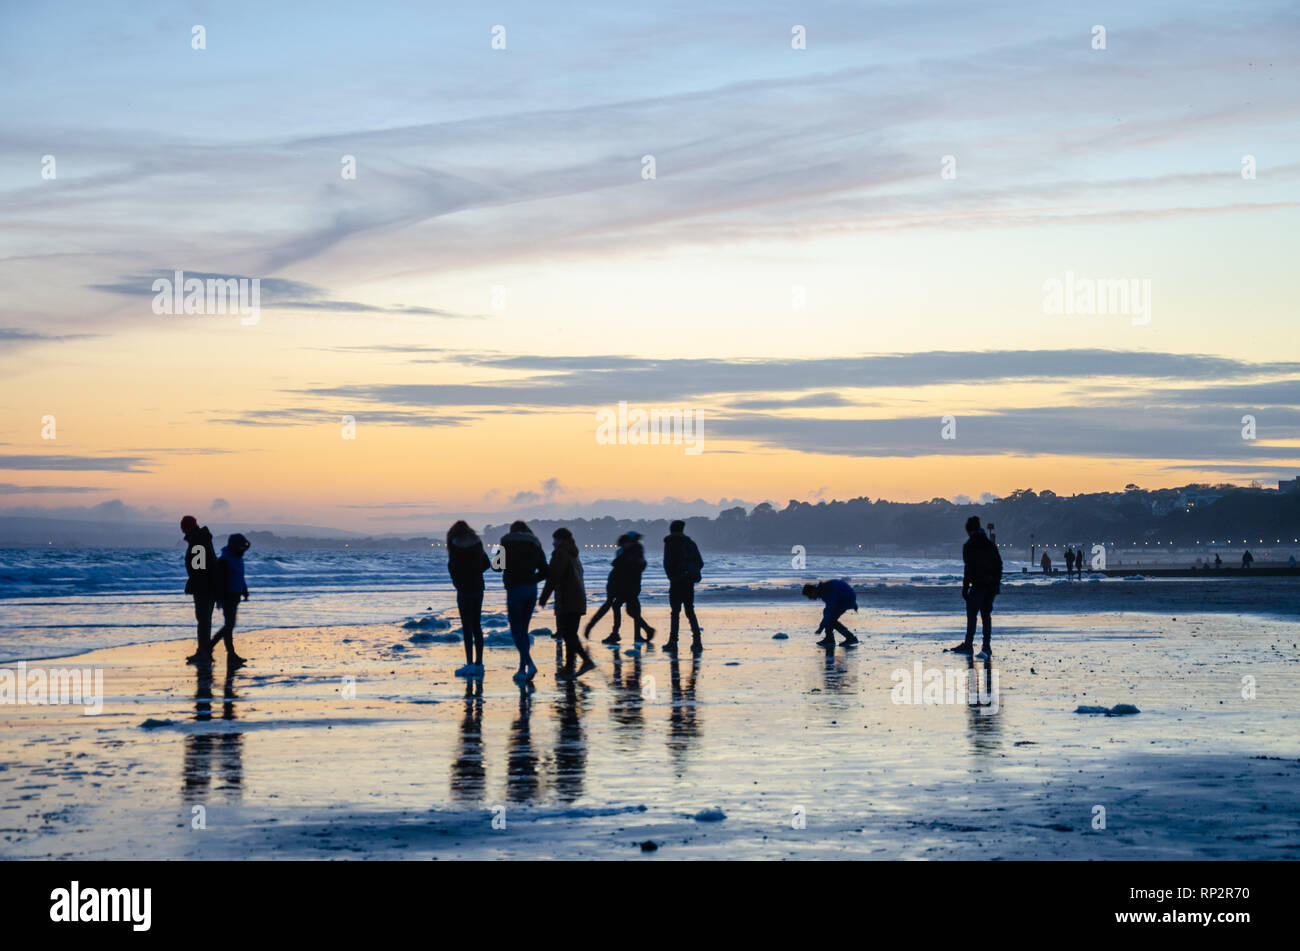 Bournemouth, UK. 20th Feb, 2019: UK Weather - A sunset at the beach at Bournemouth. Matthew Ashmore/Alamy Live News Stock Photo